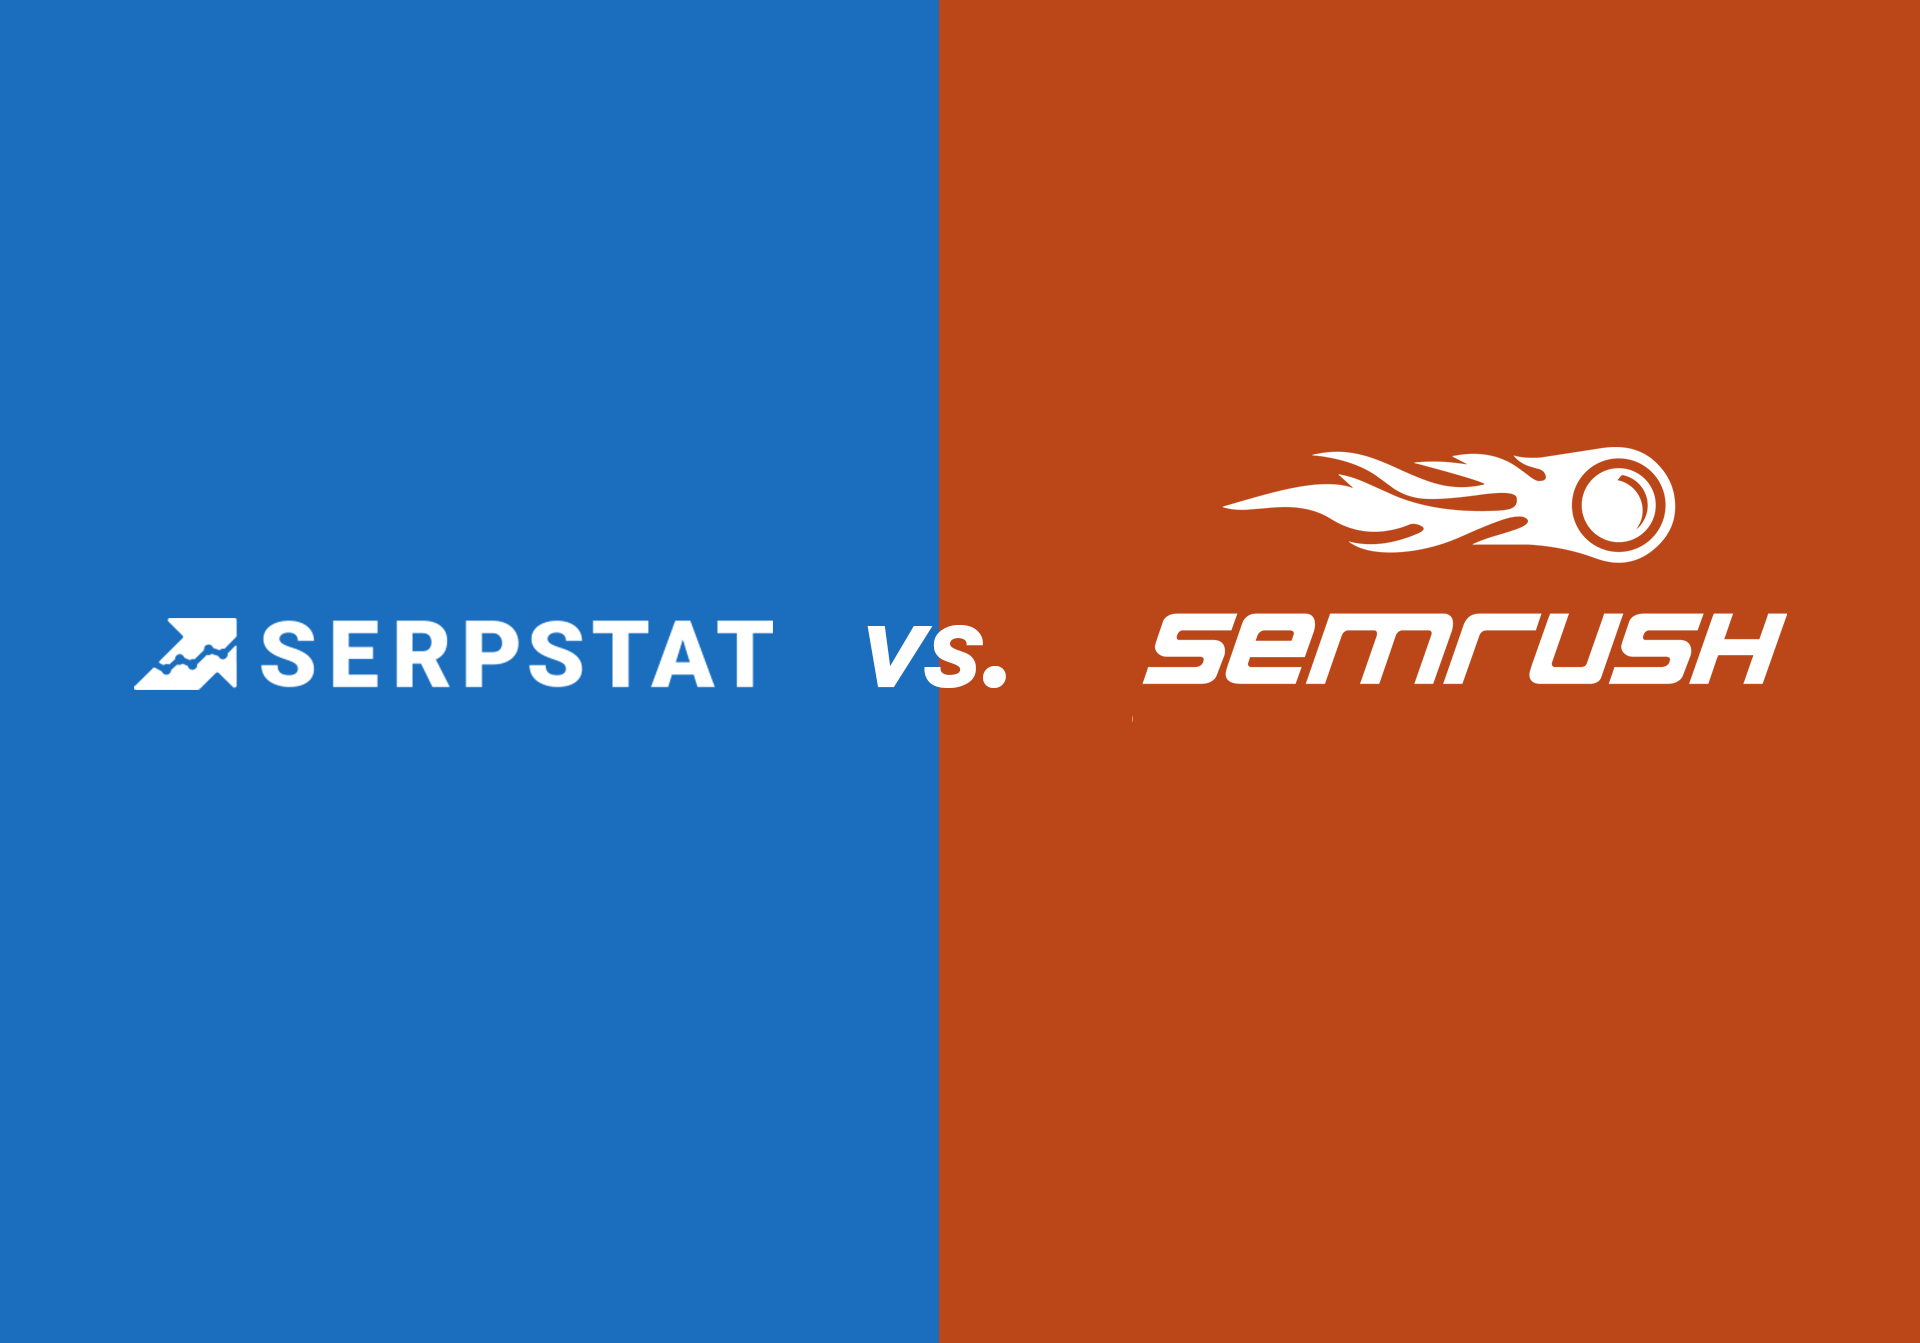 Cheapest Deal Seo Software Semrush